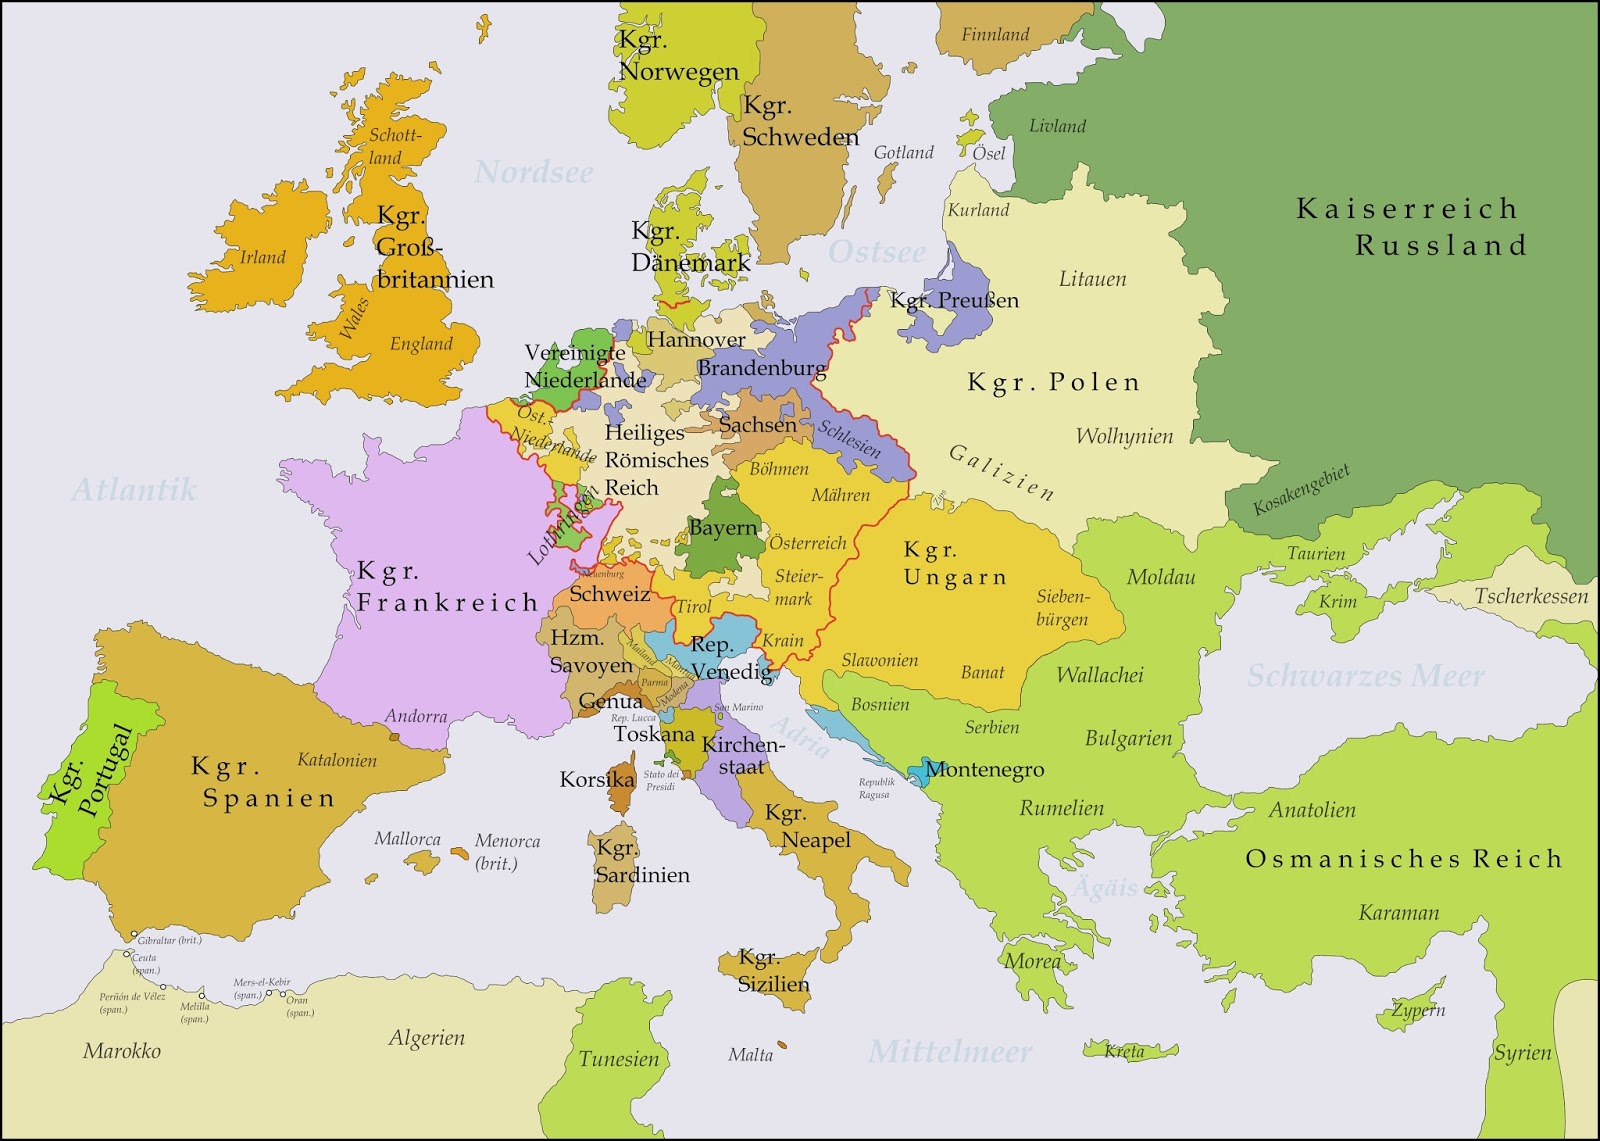 A map of Europe between 1748 and 1766